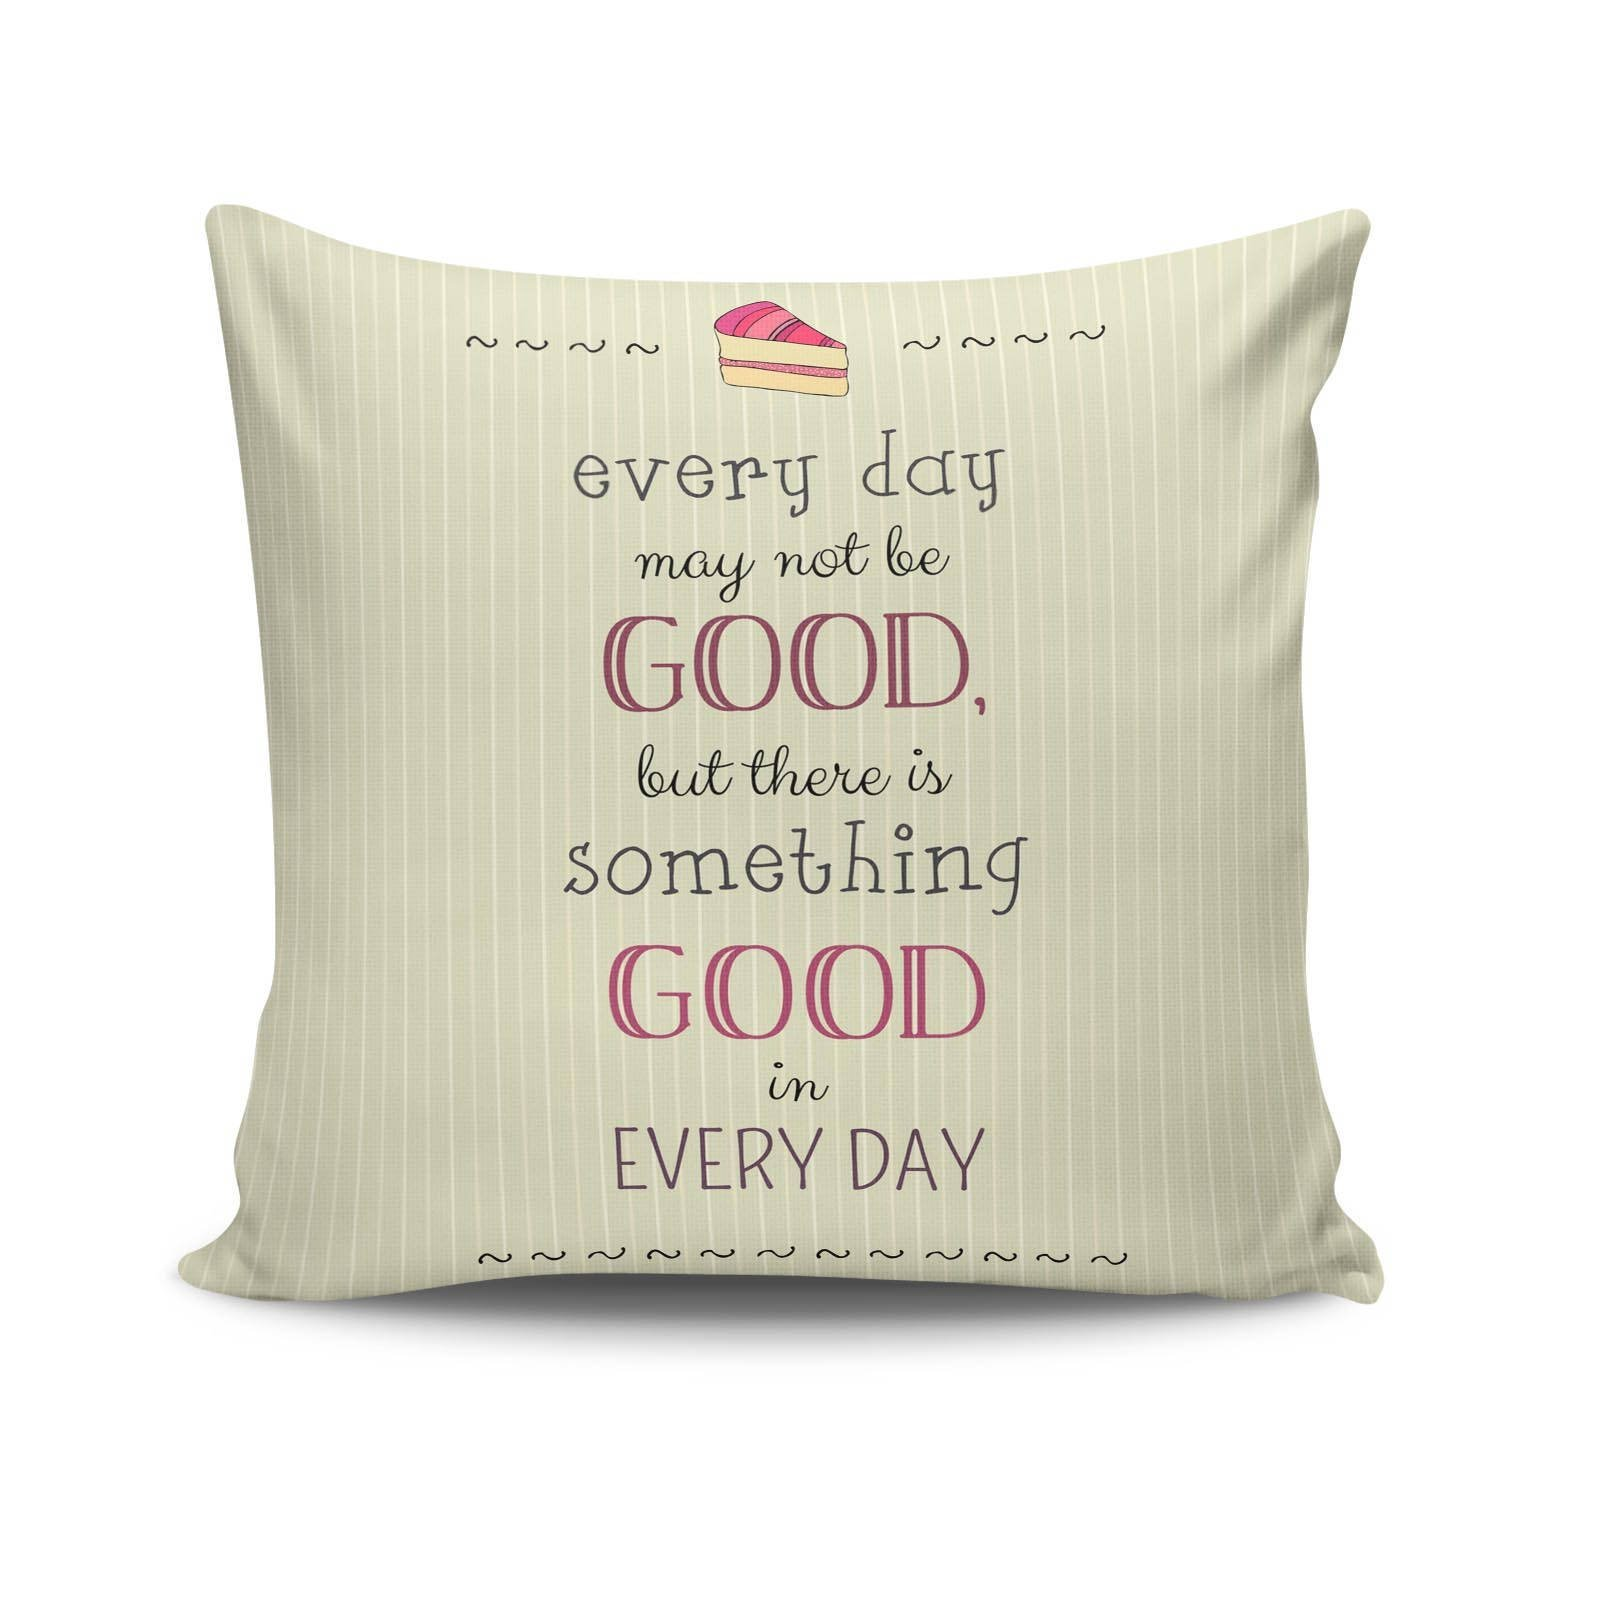 Premium Decorative Cushion Throw Pillow Hypoallergenic Stuffer Silicone Filling (17.5'' x 17.5'') | Every Day Not Be Good But There Is Something Good In Every Day Cake Home 50% Cotton 50% Polyester Full